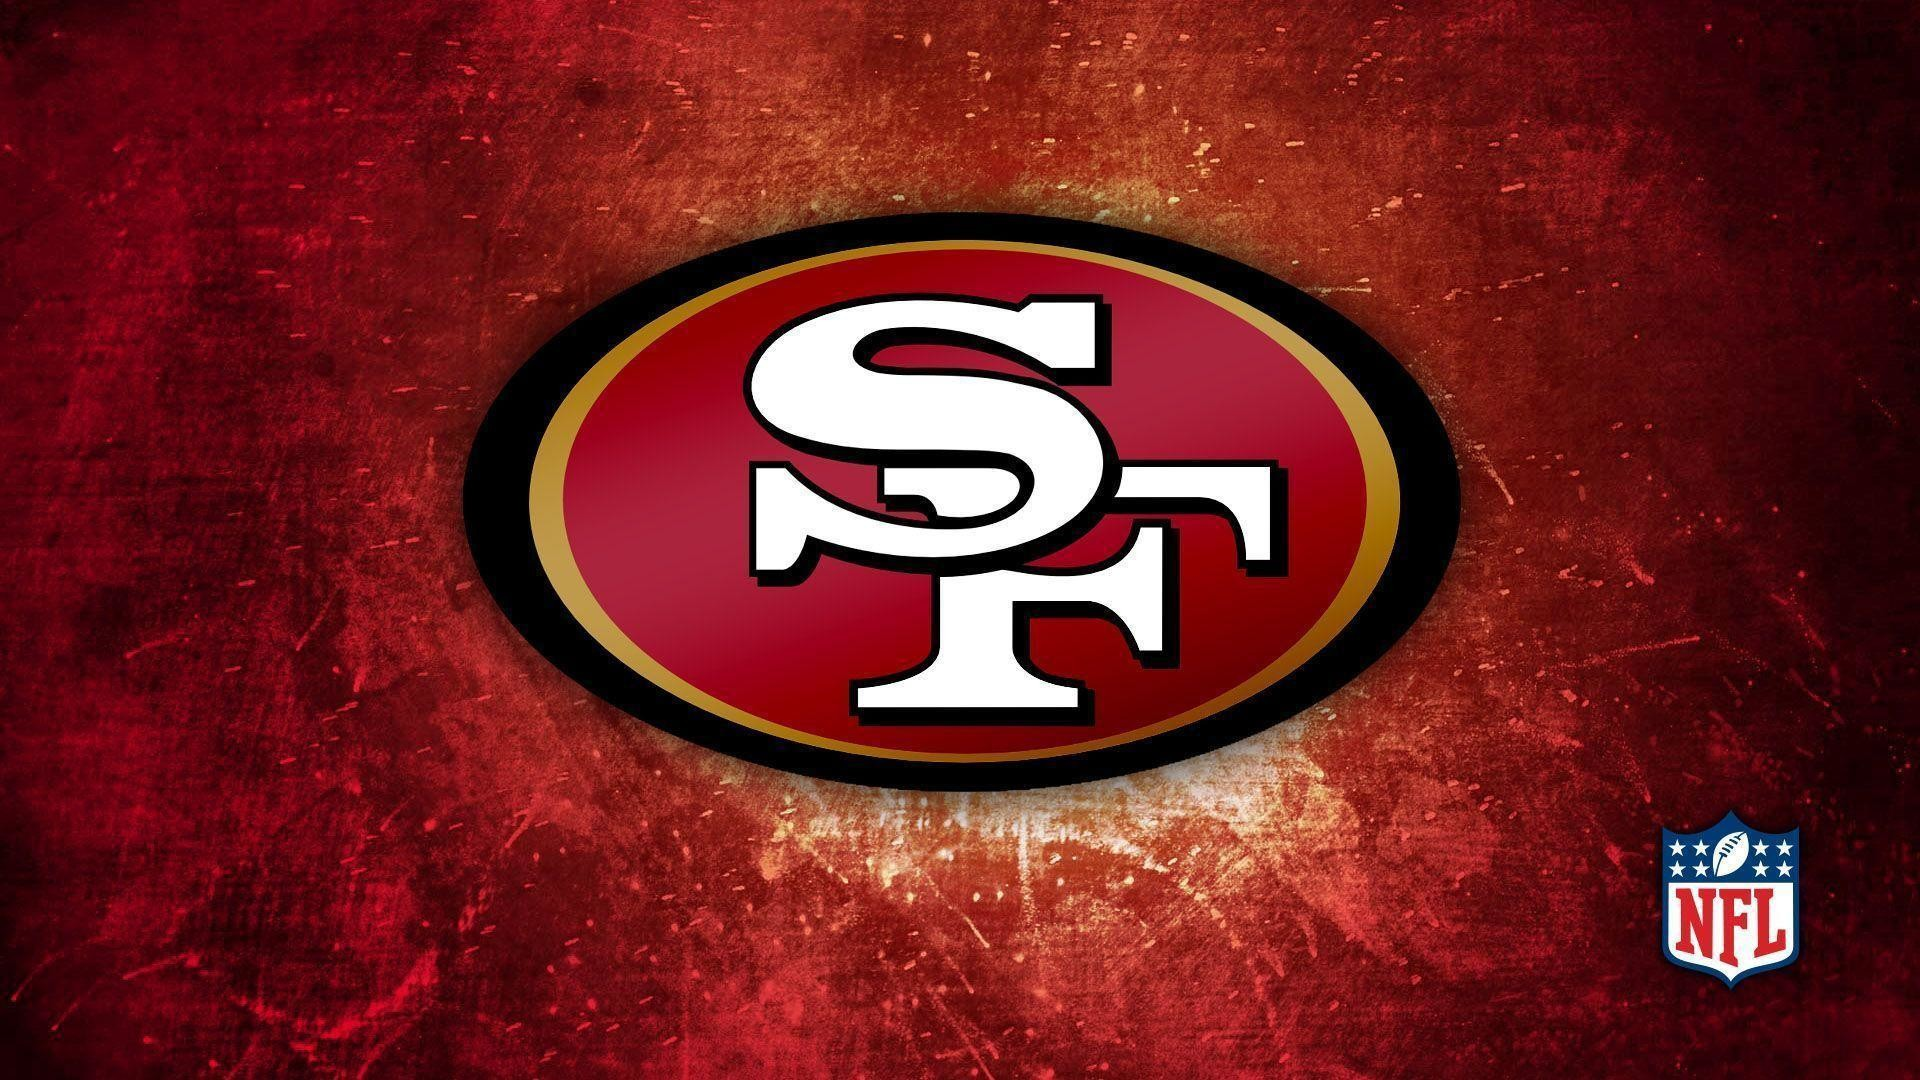 San Francisco 49ers Logo Wallpaper (66+ images).